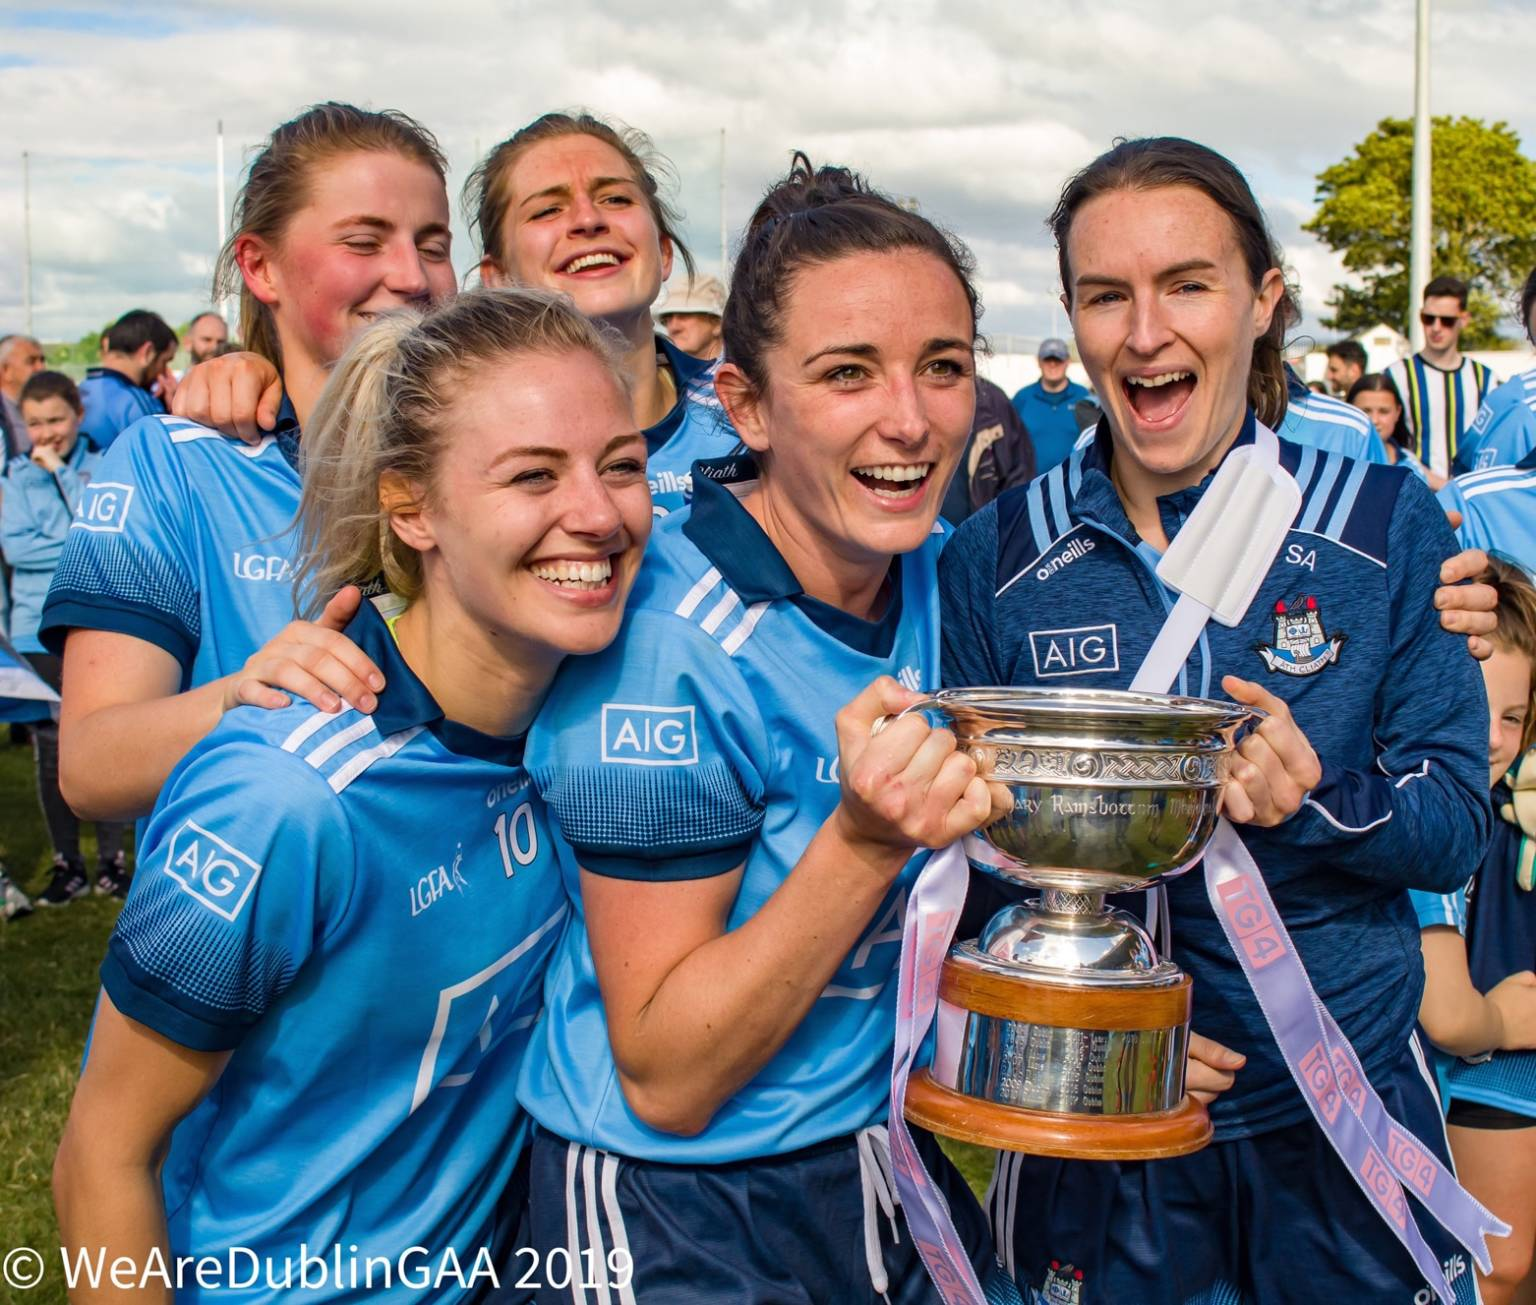 Dublin players celebrating their Leinster championship win, the 2020 Leinster Junior and Intermediate championships have been cancelled due to Covid-19.